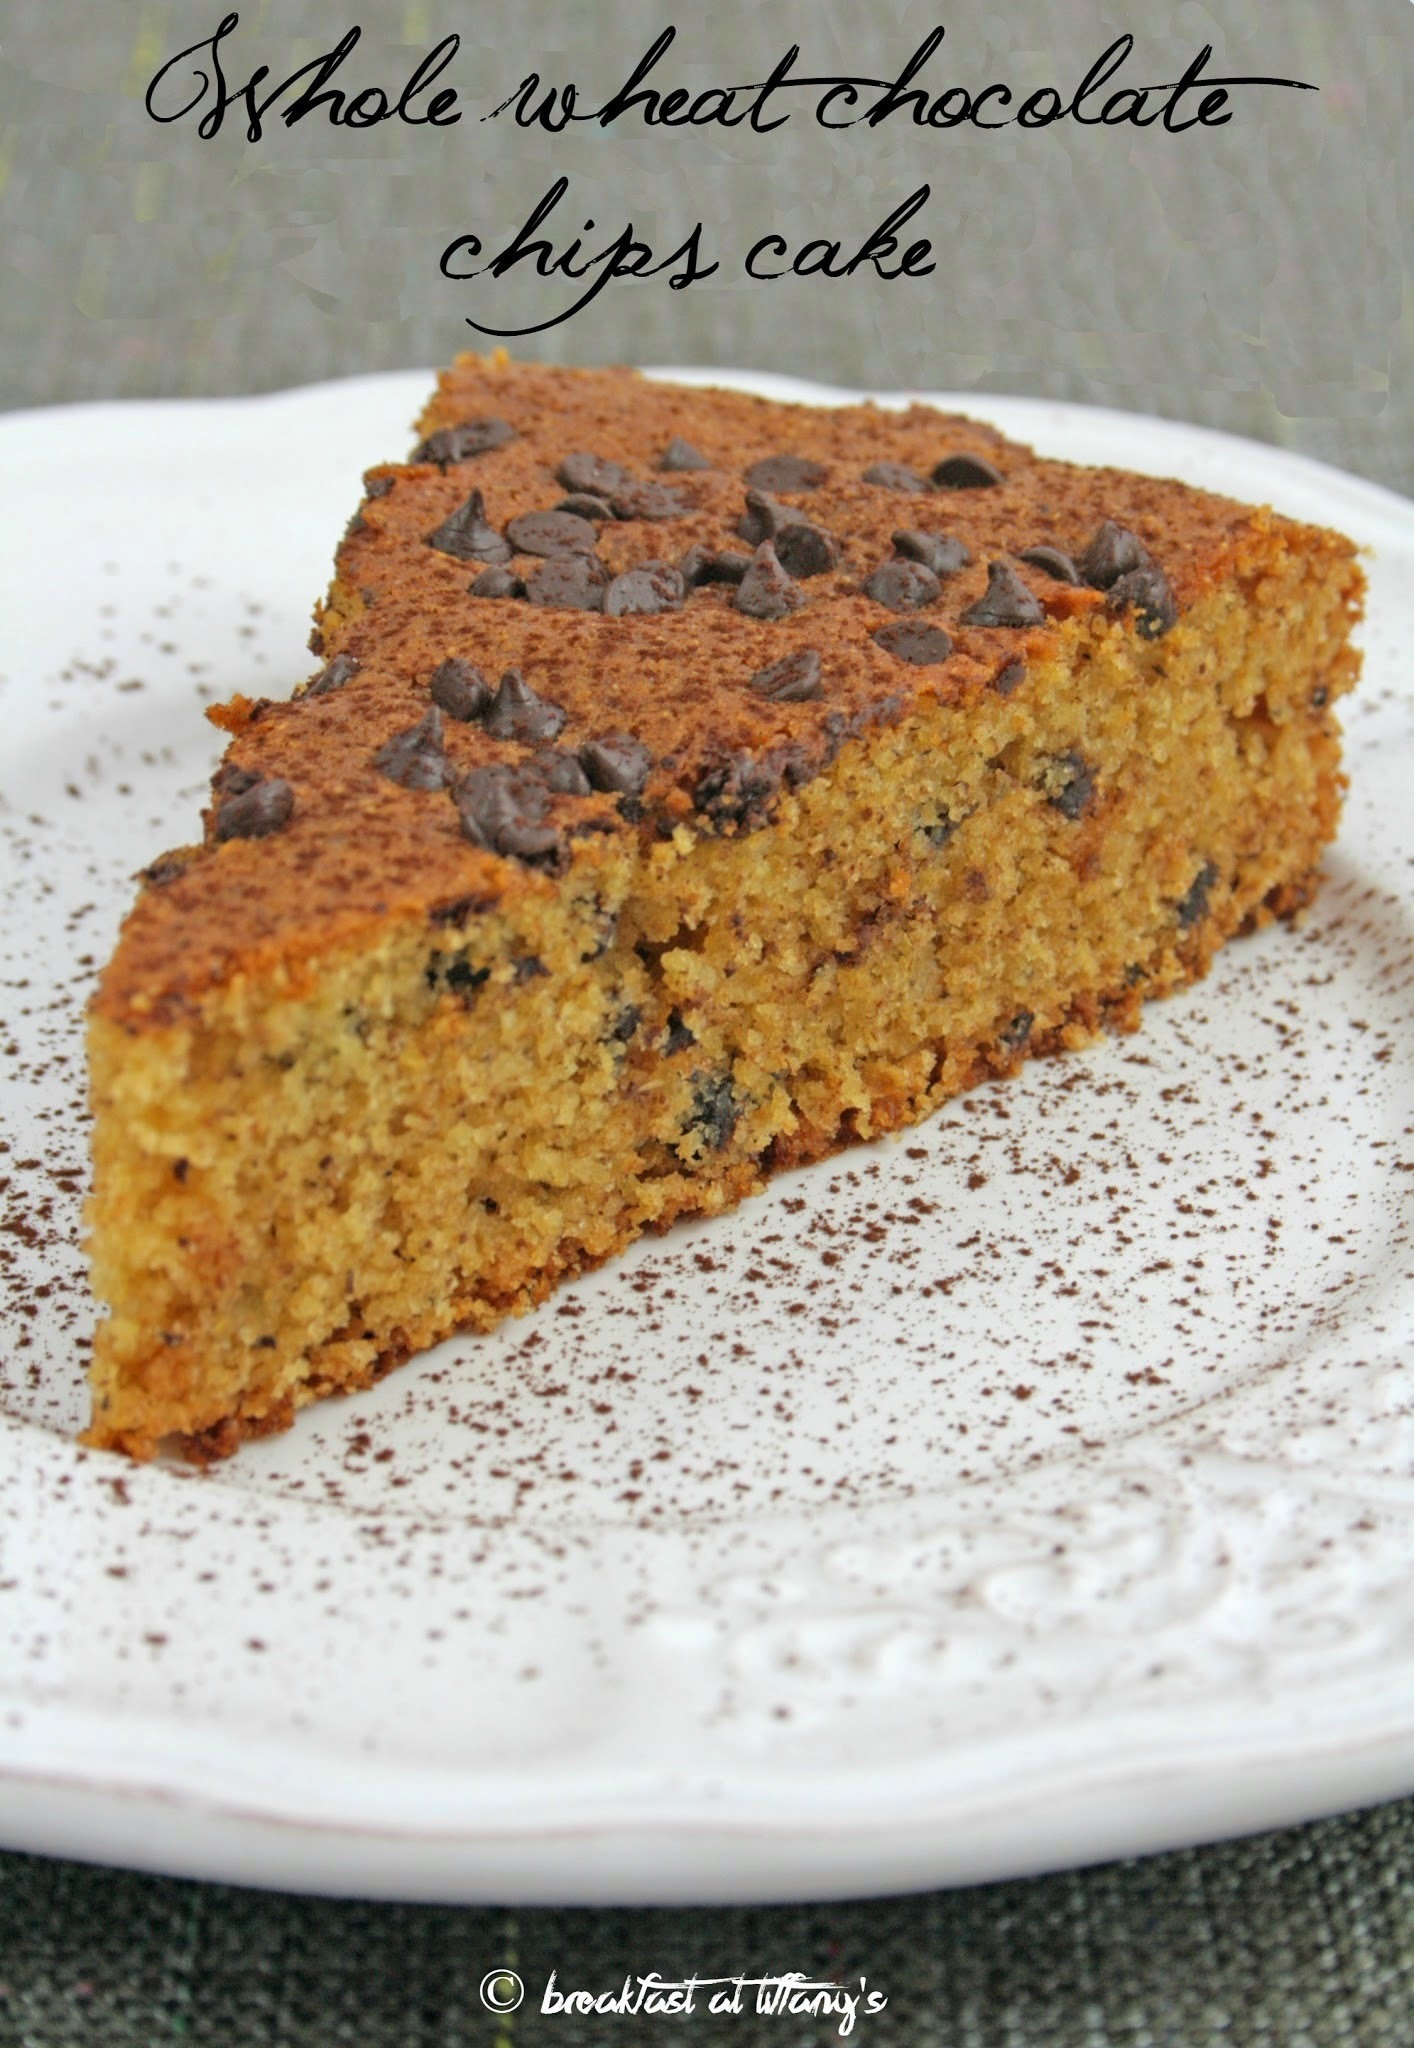 Torta integrale al cioccolato / Whole wheat chocolate chips cake